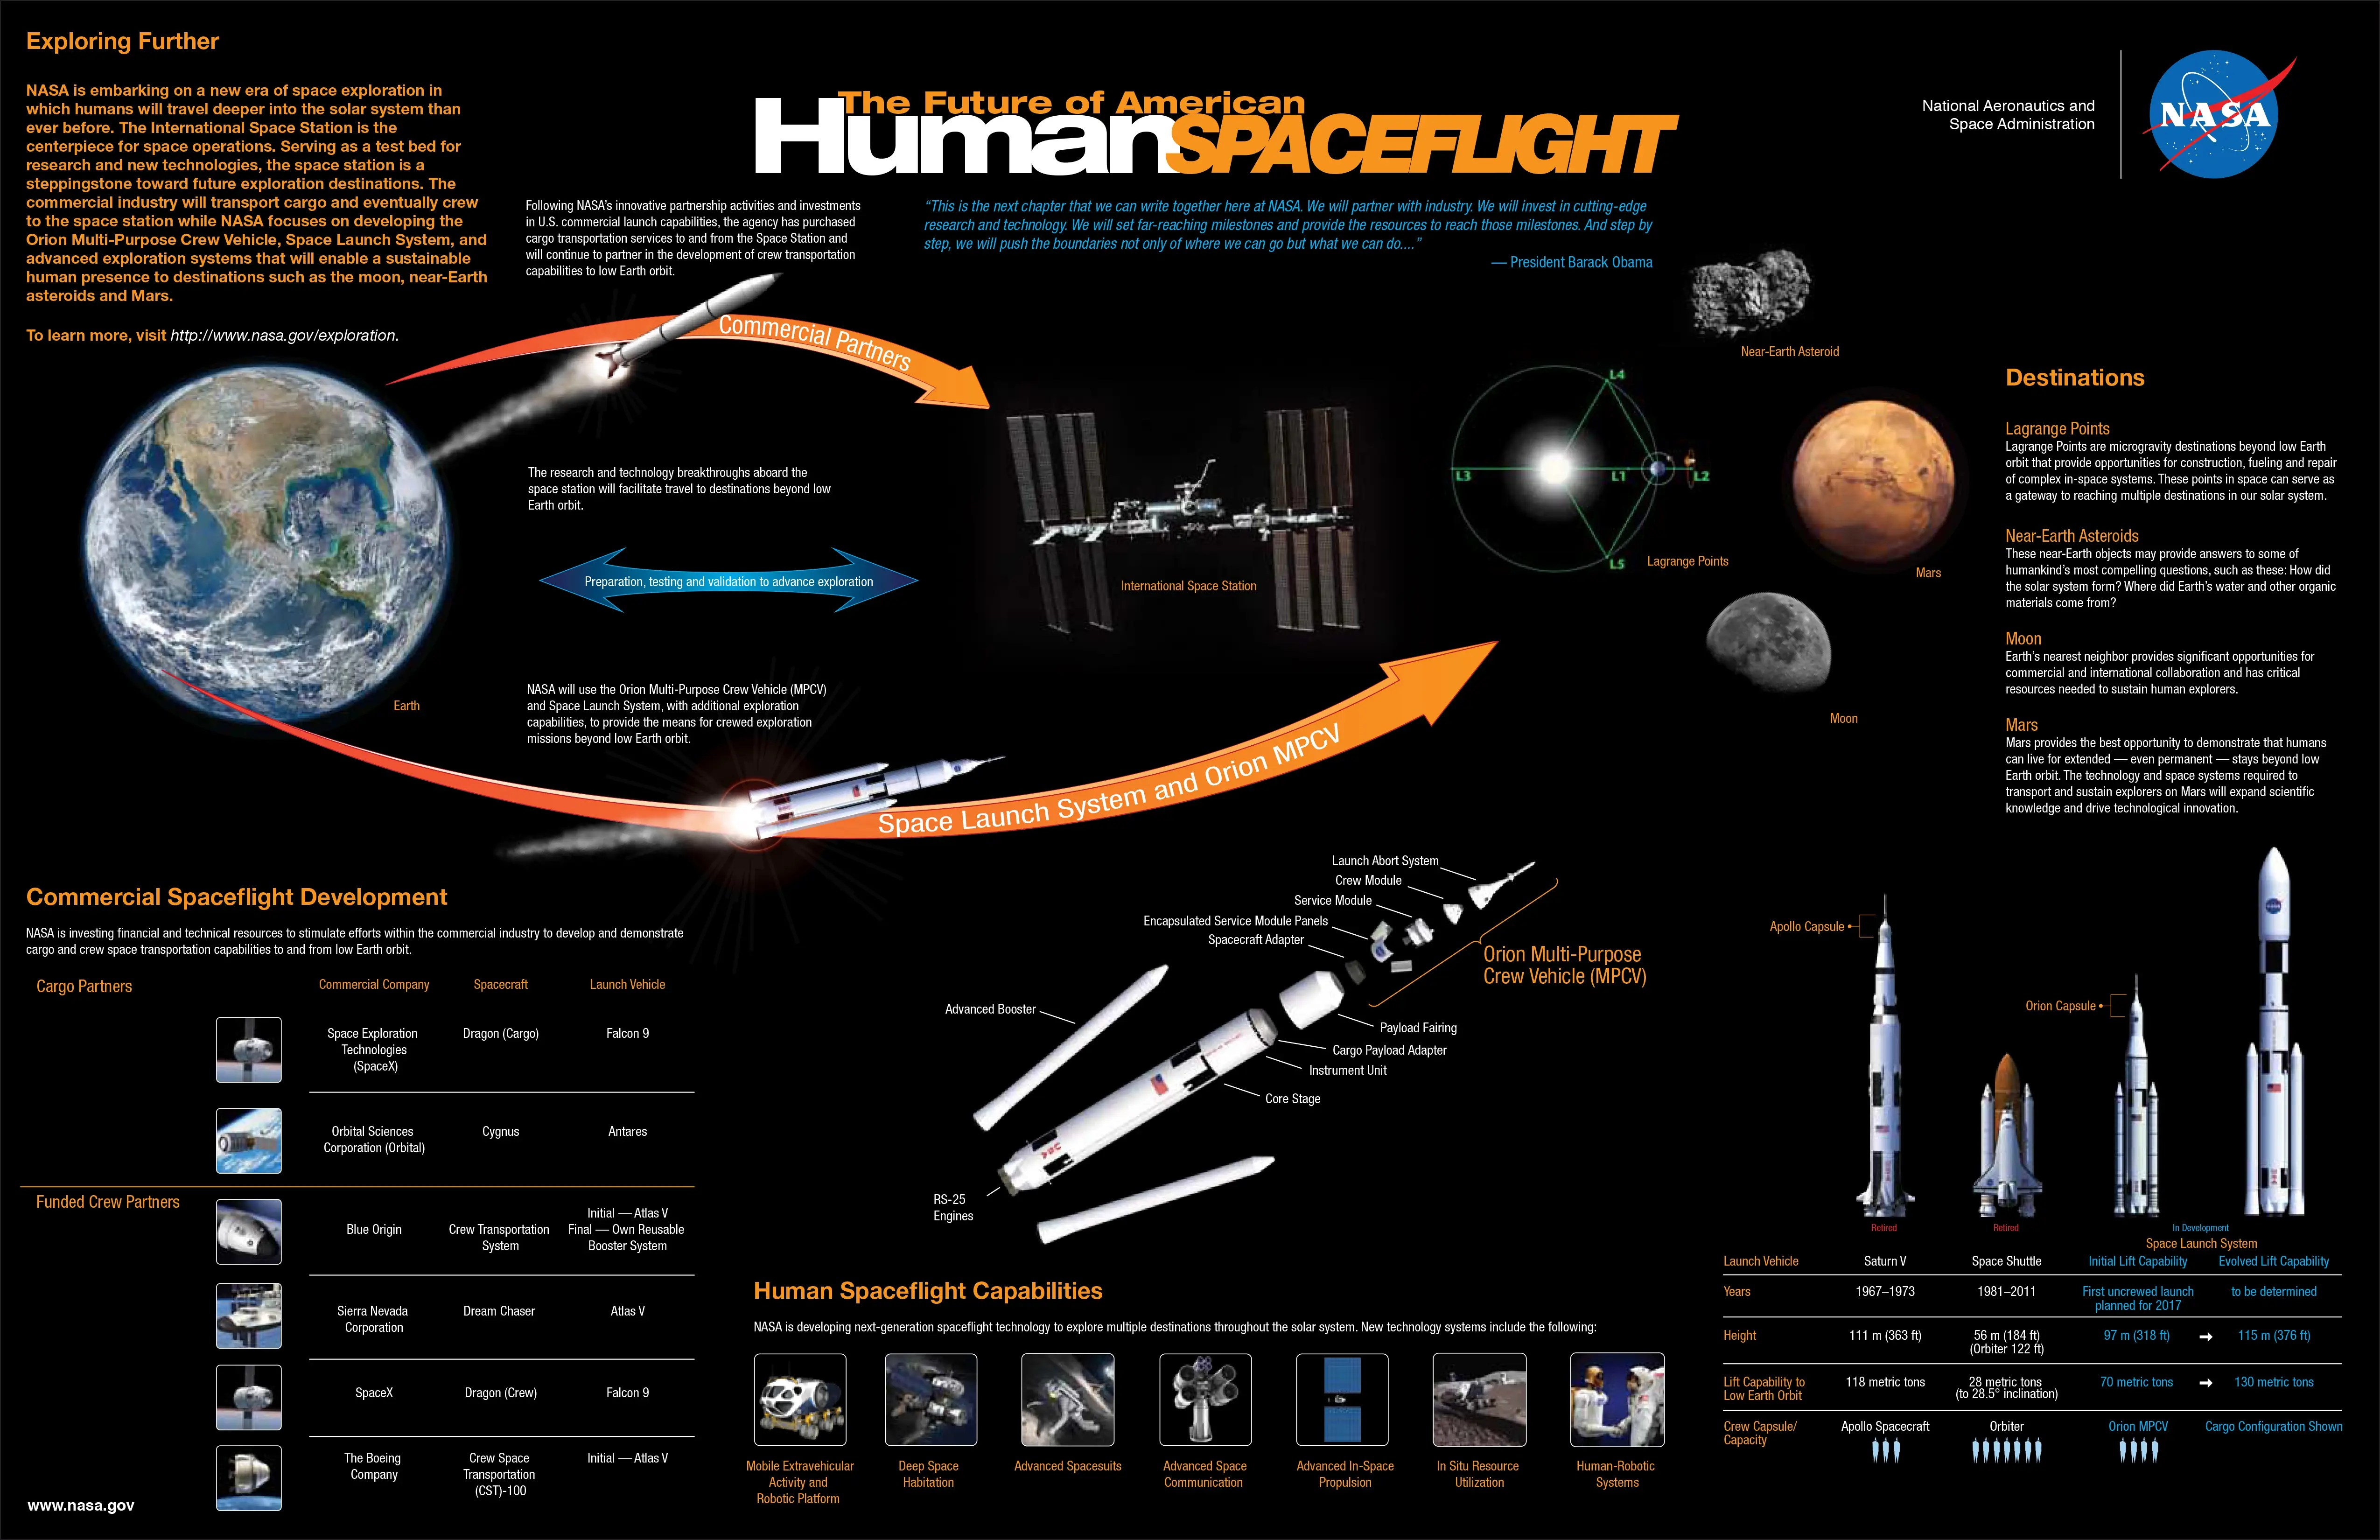 Mars One S Plan To Colonize The Red Planet In 10 Years Is